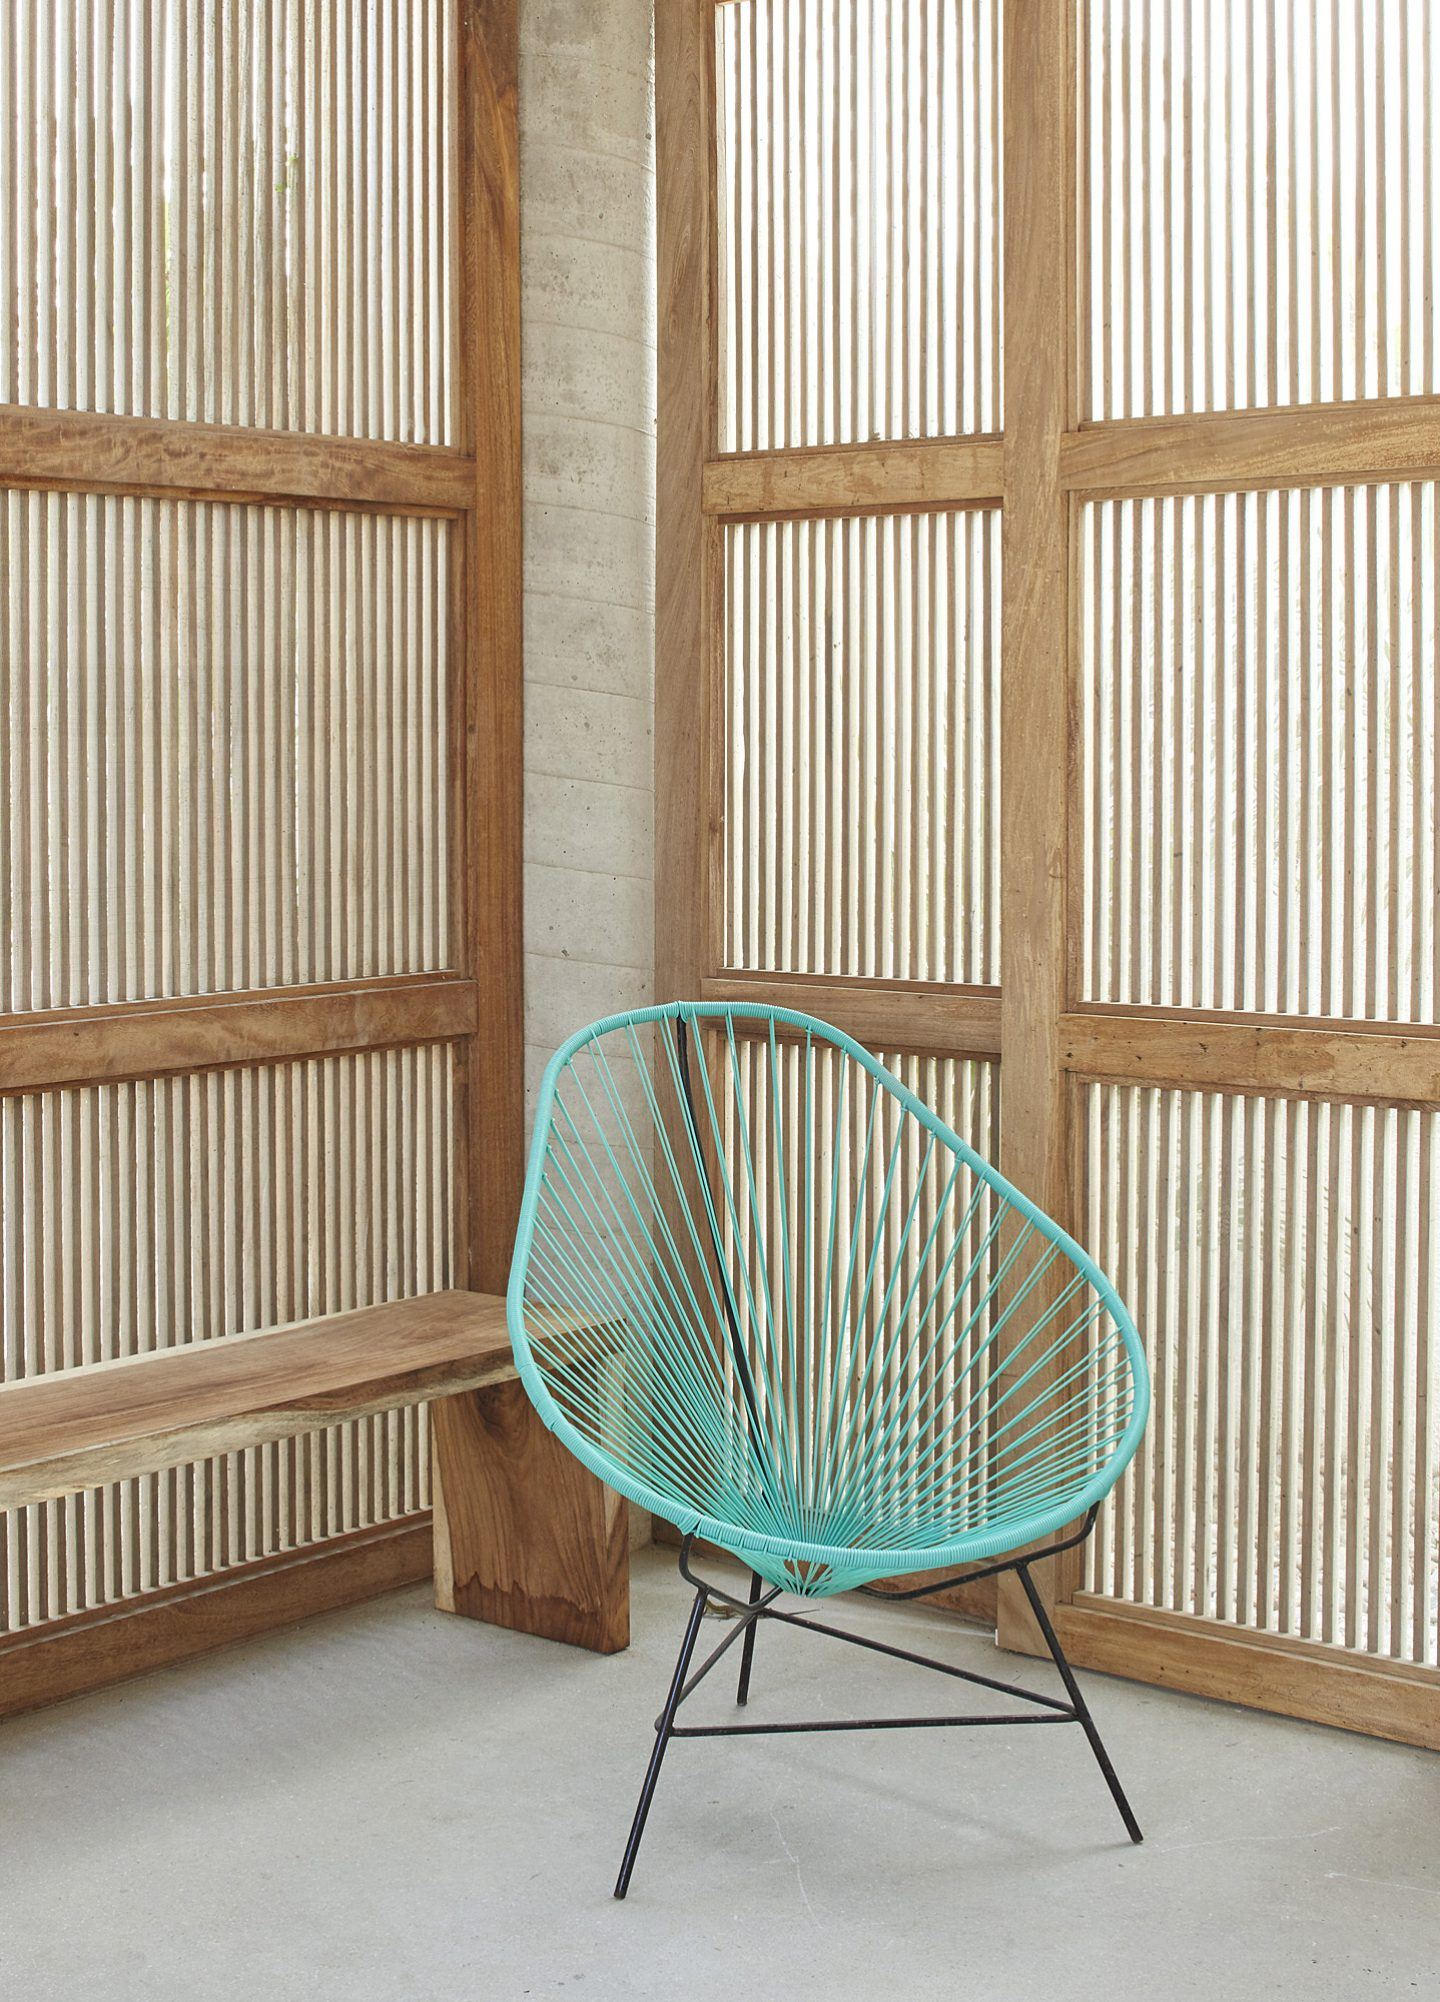 IGNANT-Travel-CasaCal-1